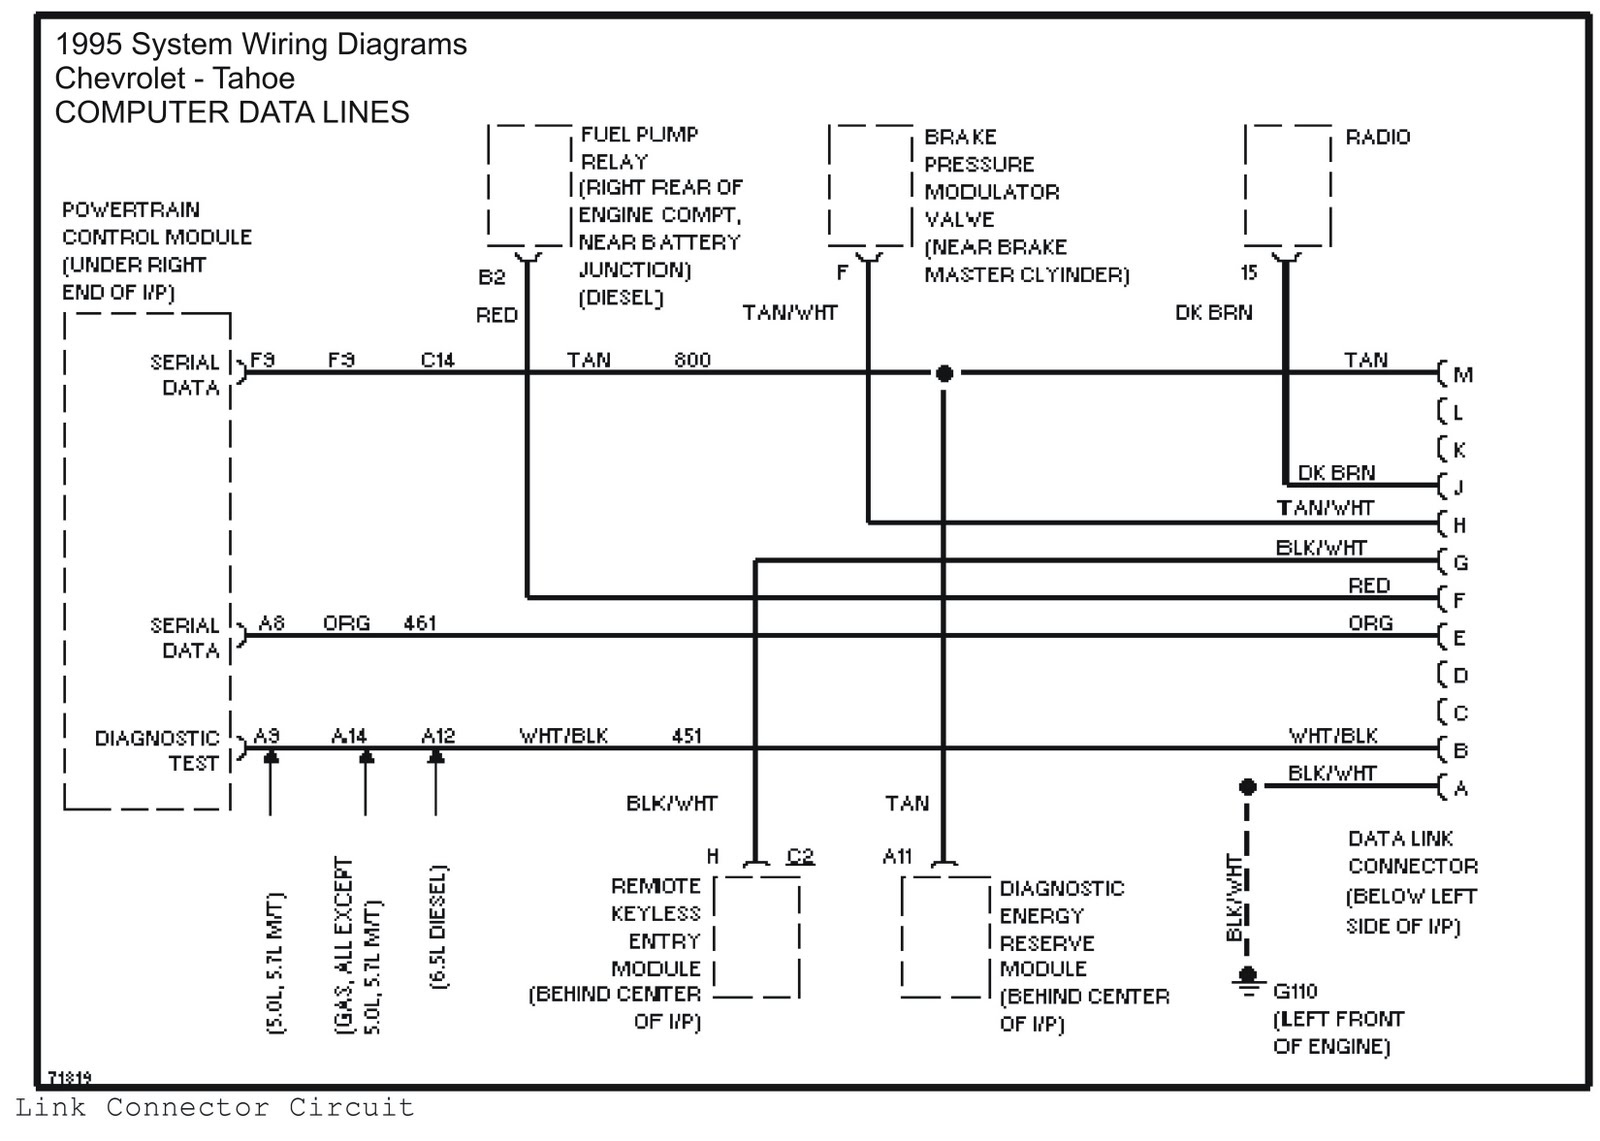 2001 pontiac grand am stereo wiring diagram images wiring diagram chevy tahoe wiring diagram on 2002 stereo